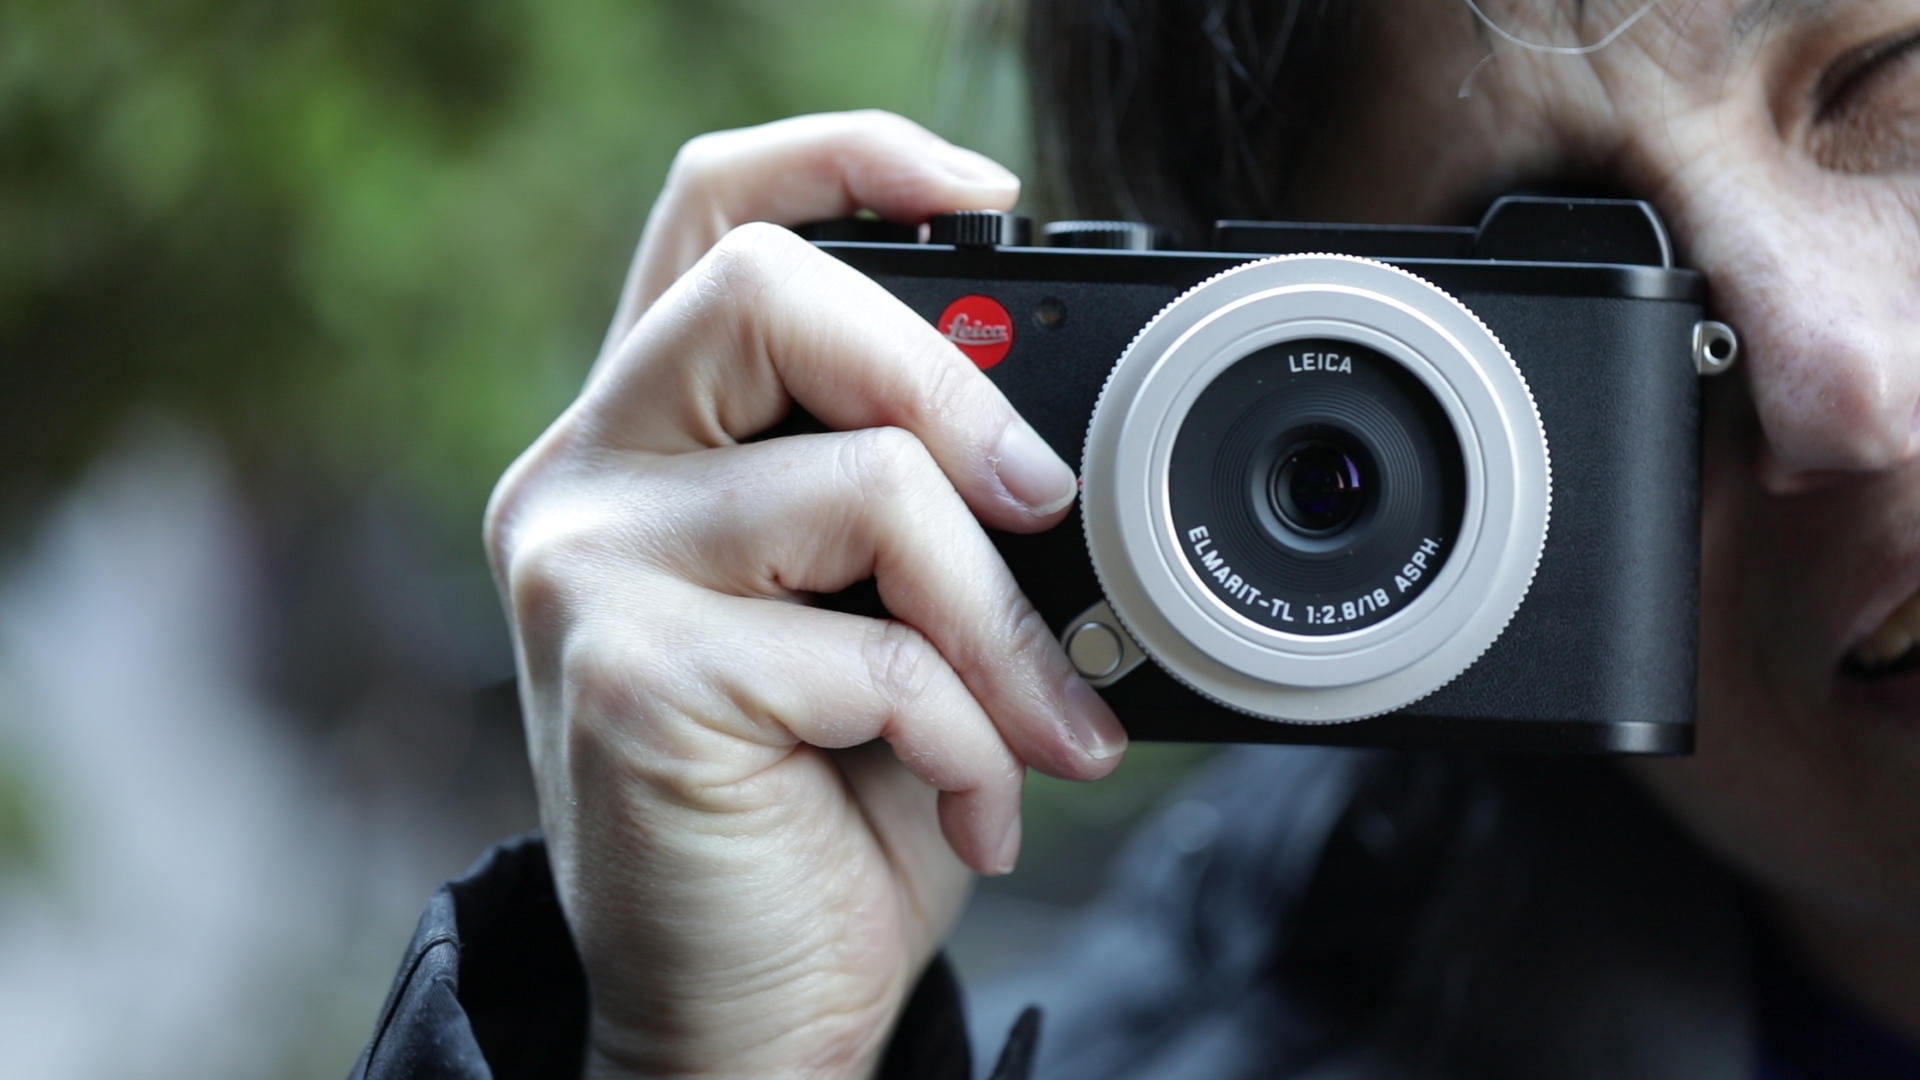 Video: Leica CL mirrorless has a typically unconventional design